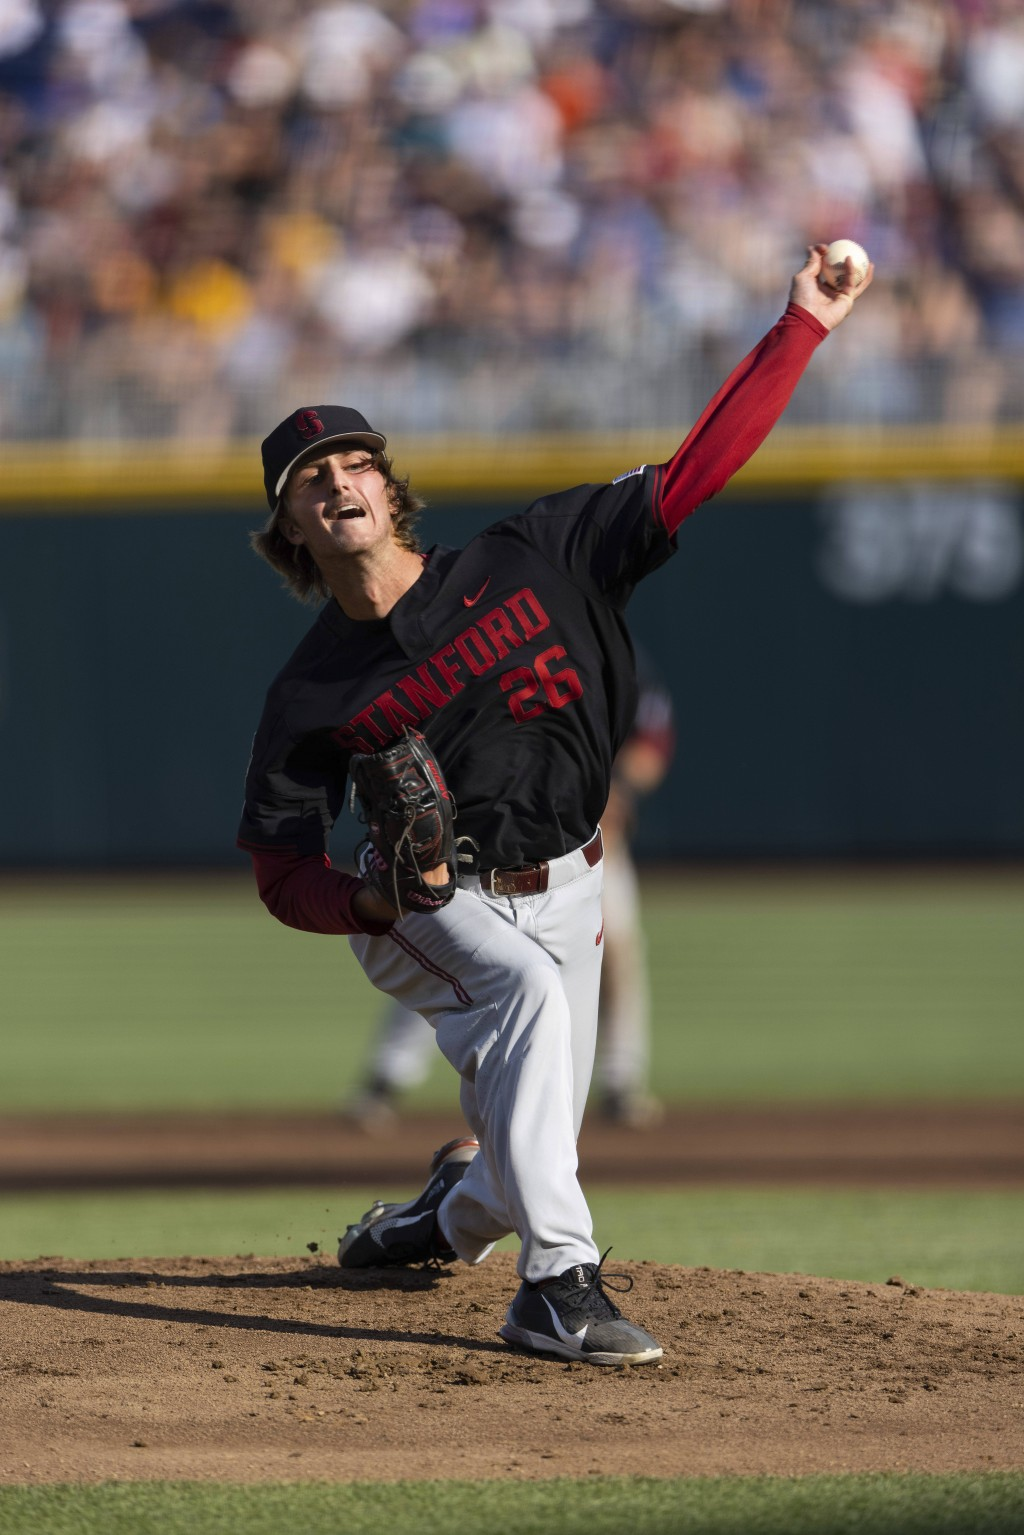 Stanford starting pitcher Quinn Mathews (26) throws against Vanderbilt in the first inning during a baseball game in the College World Series Wednesda...